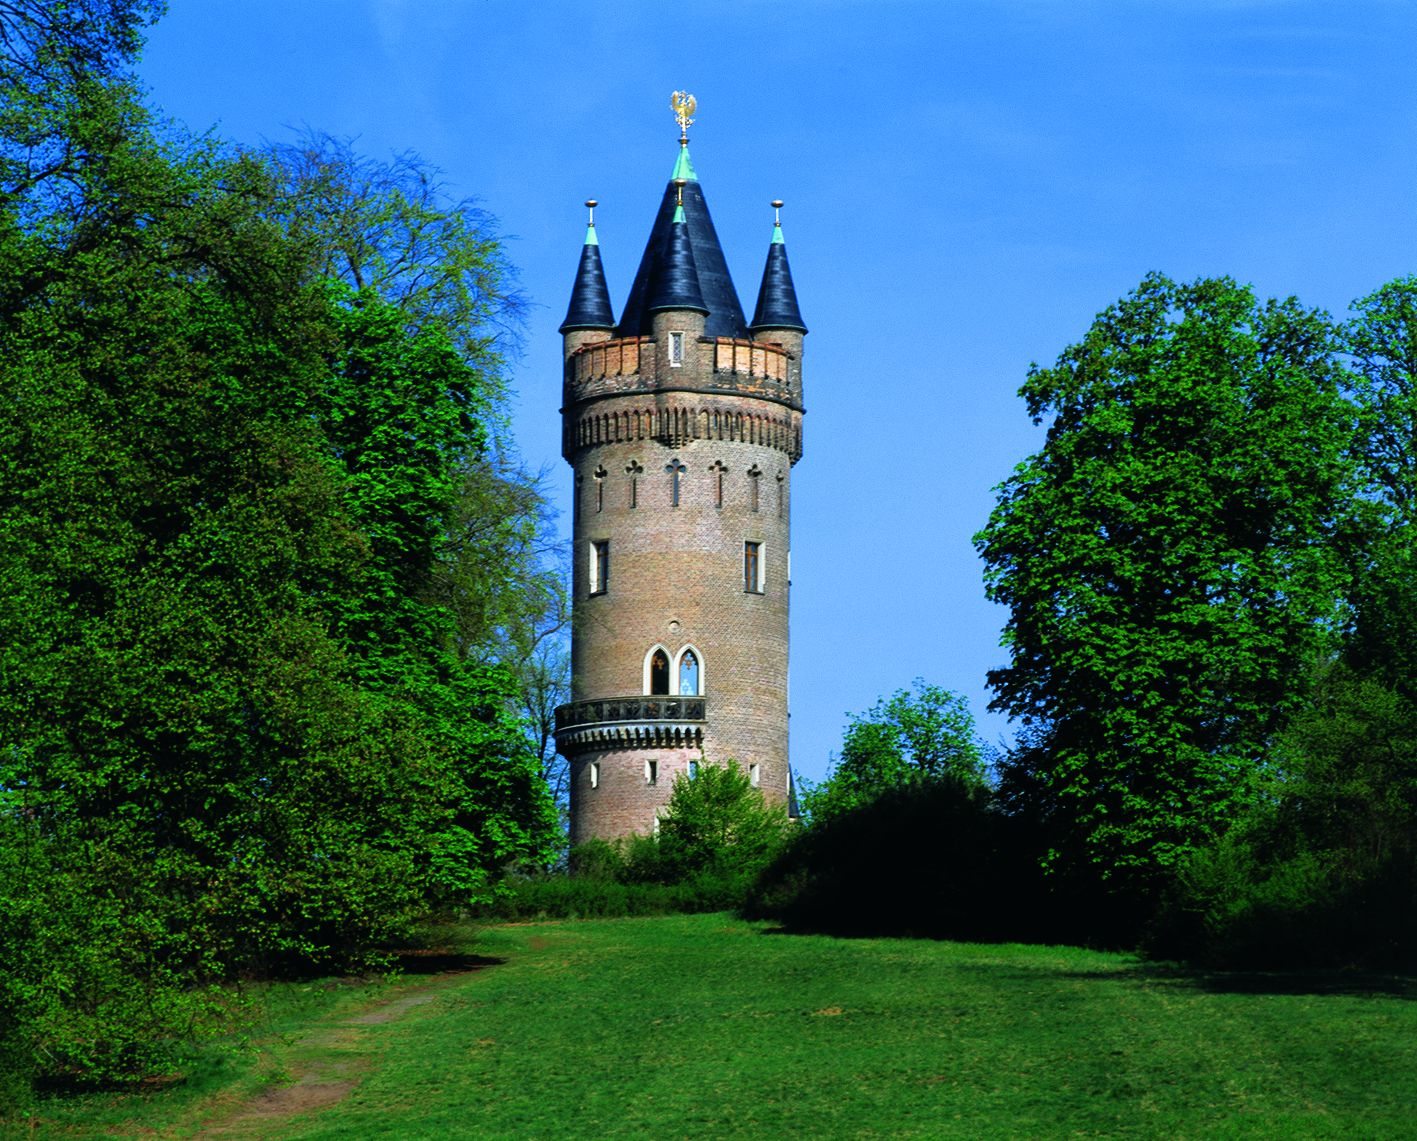 flatowturm im park babelsberg landeshauptstadt potsdam. Black Bedroom Furniture Sets. Home Design Ideas